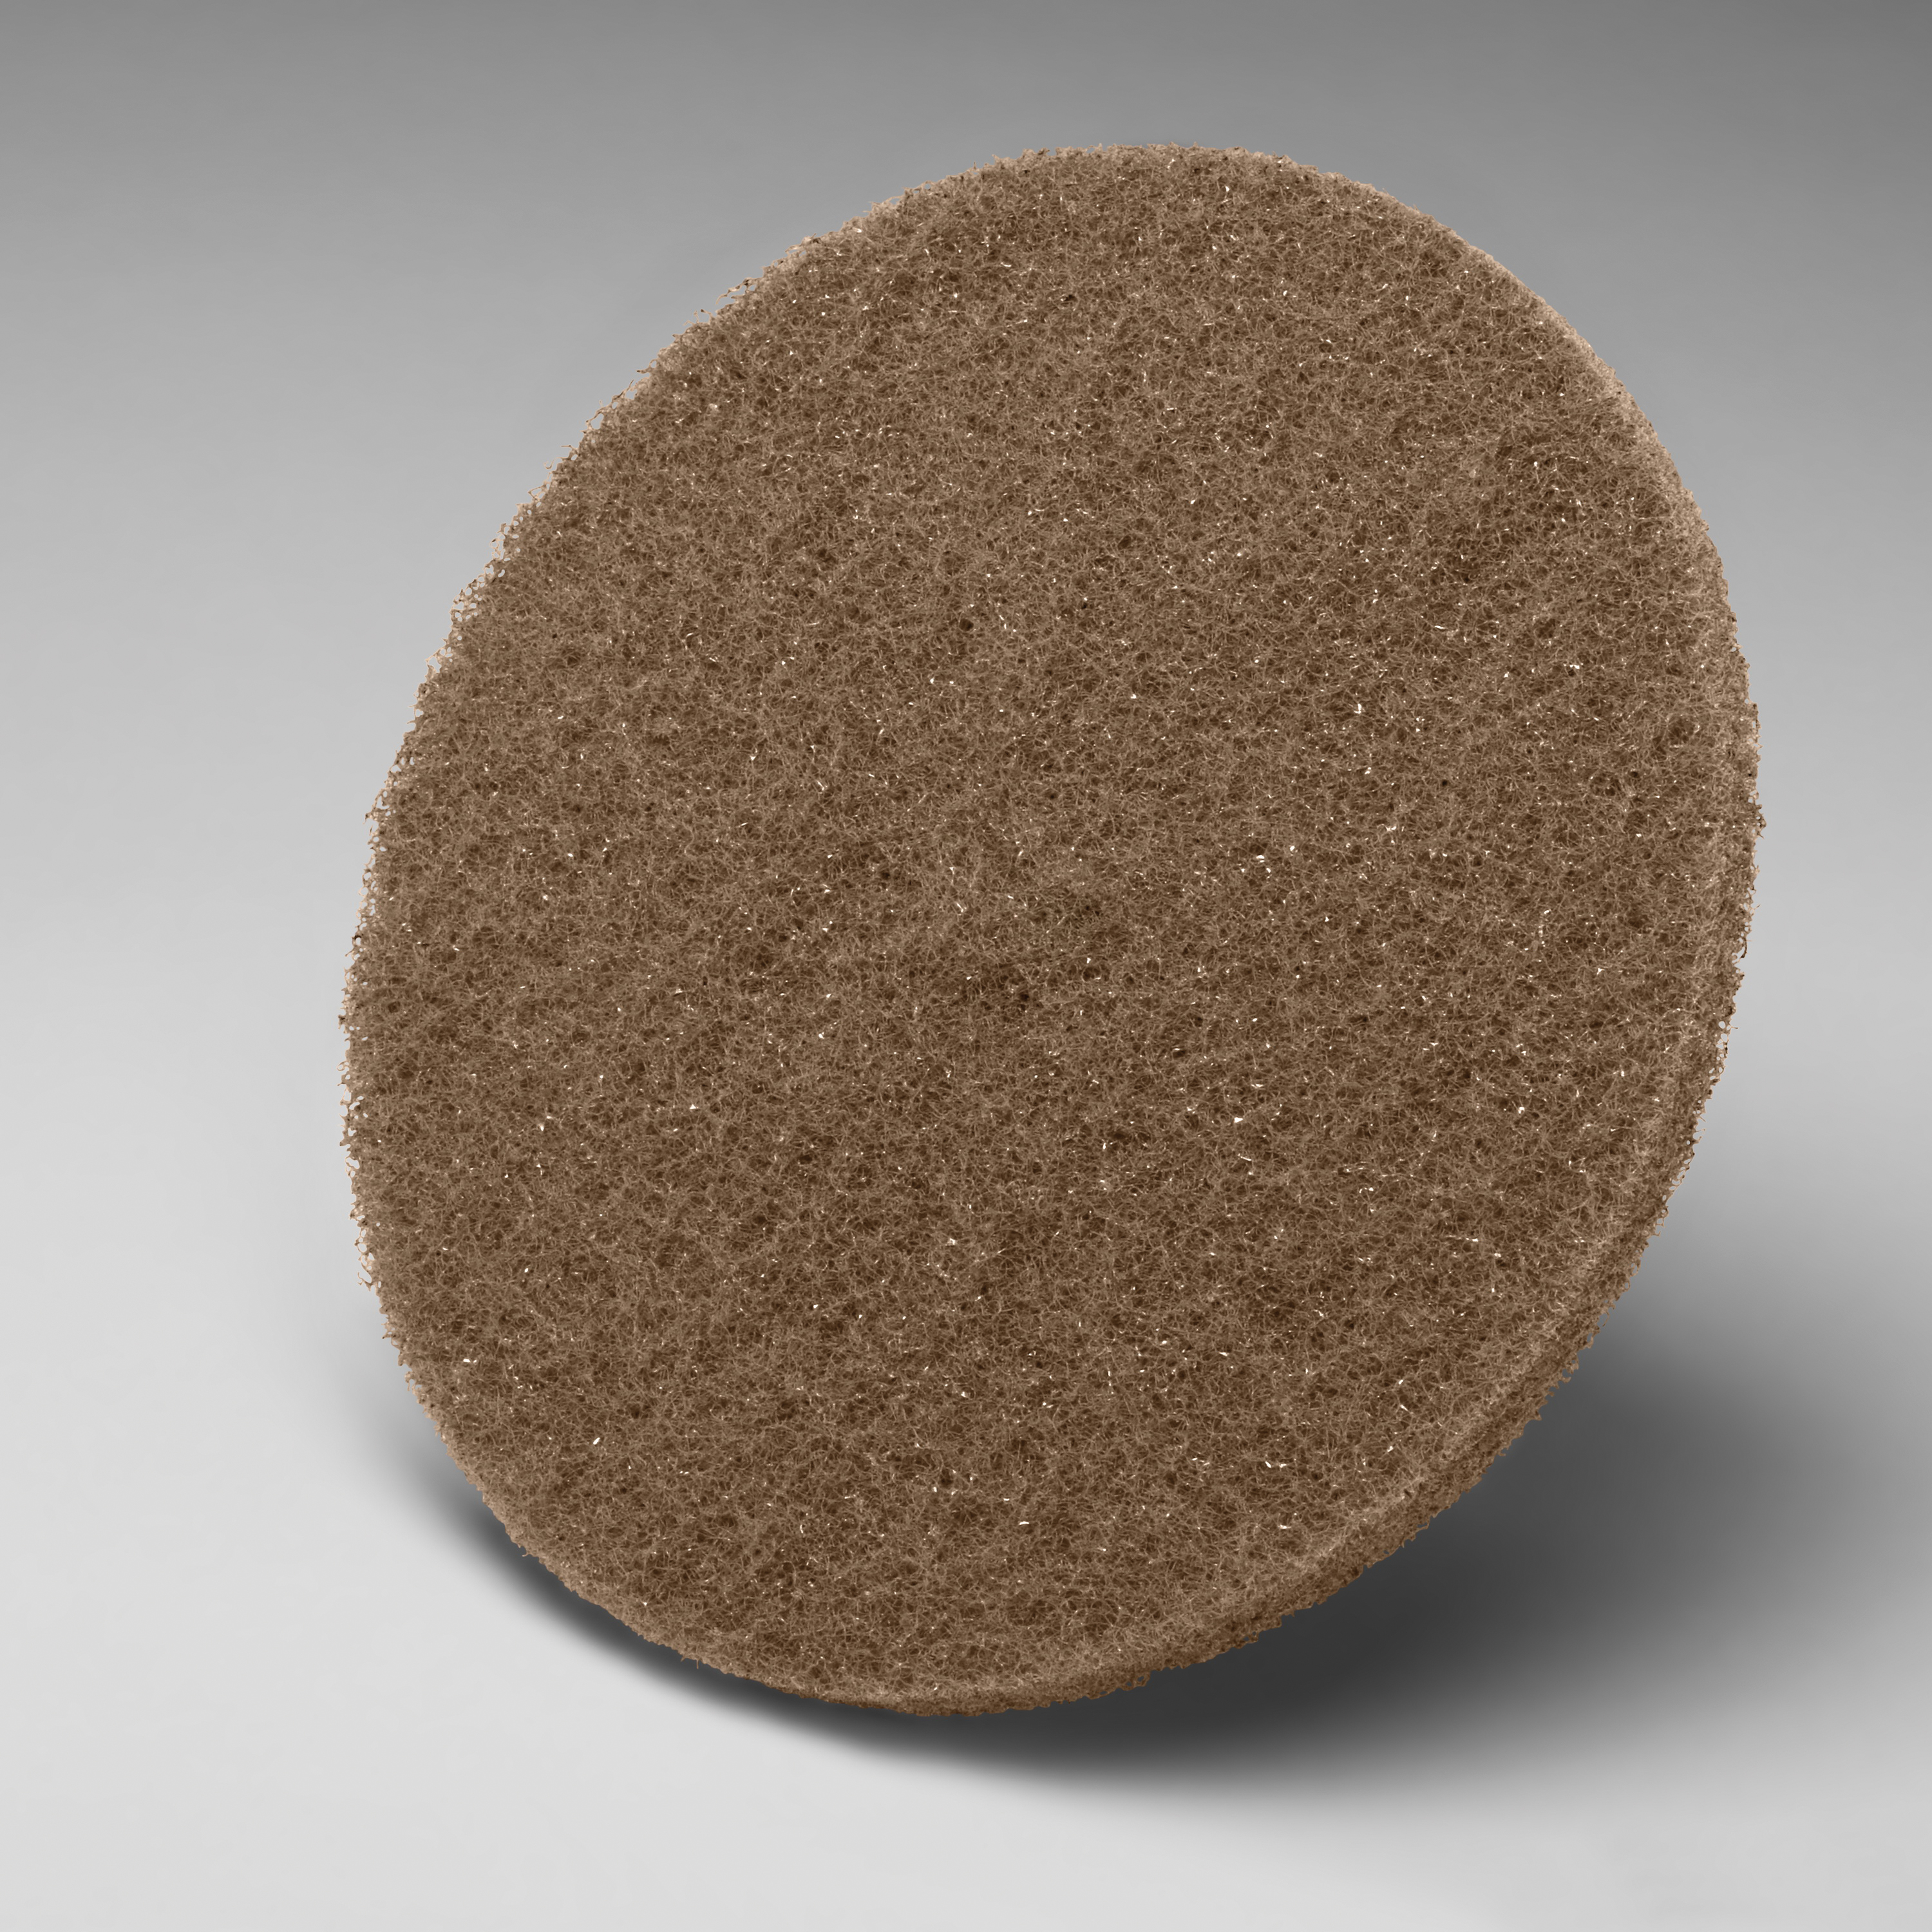 Scotch-Brite™ Hookit™ 048011-00752 SC-DH Surface Conditioning Surface Conditioning Disc, 8 in Dia Disc, Coarse Grade, Aluminum Oxide Abrasive, Paper Backing